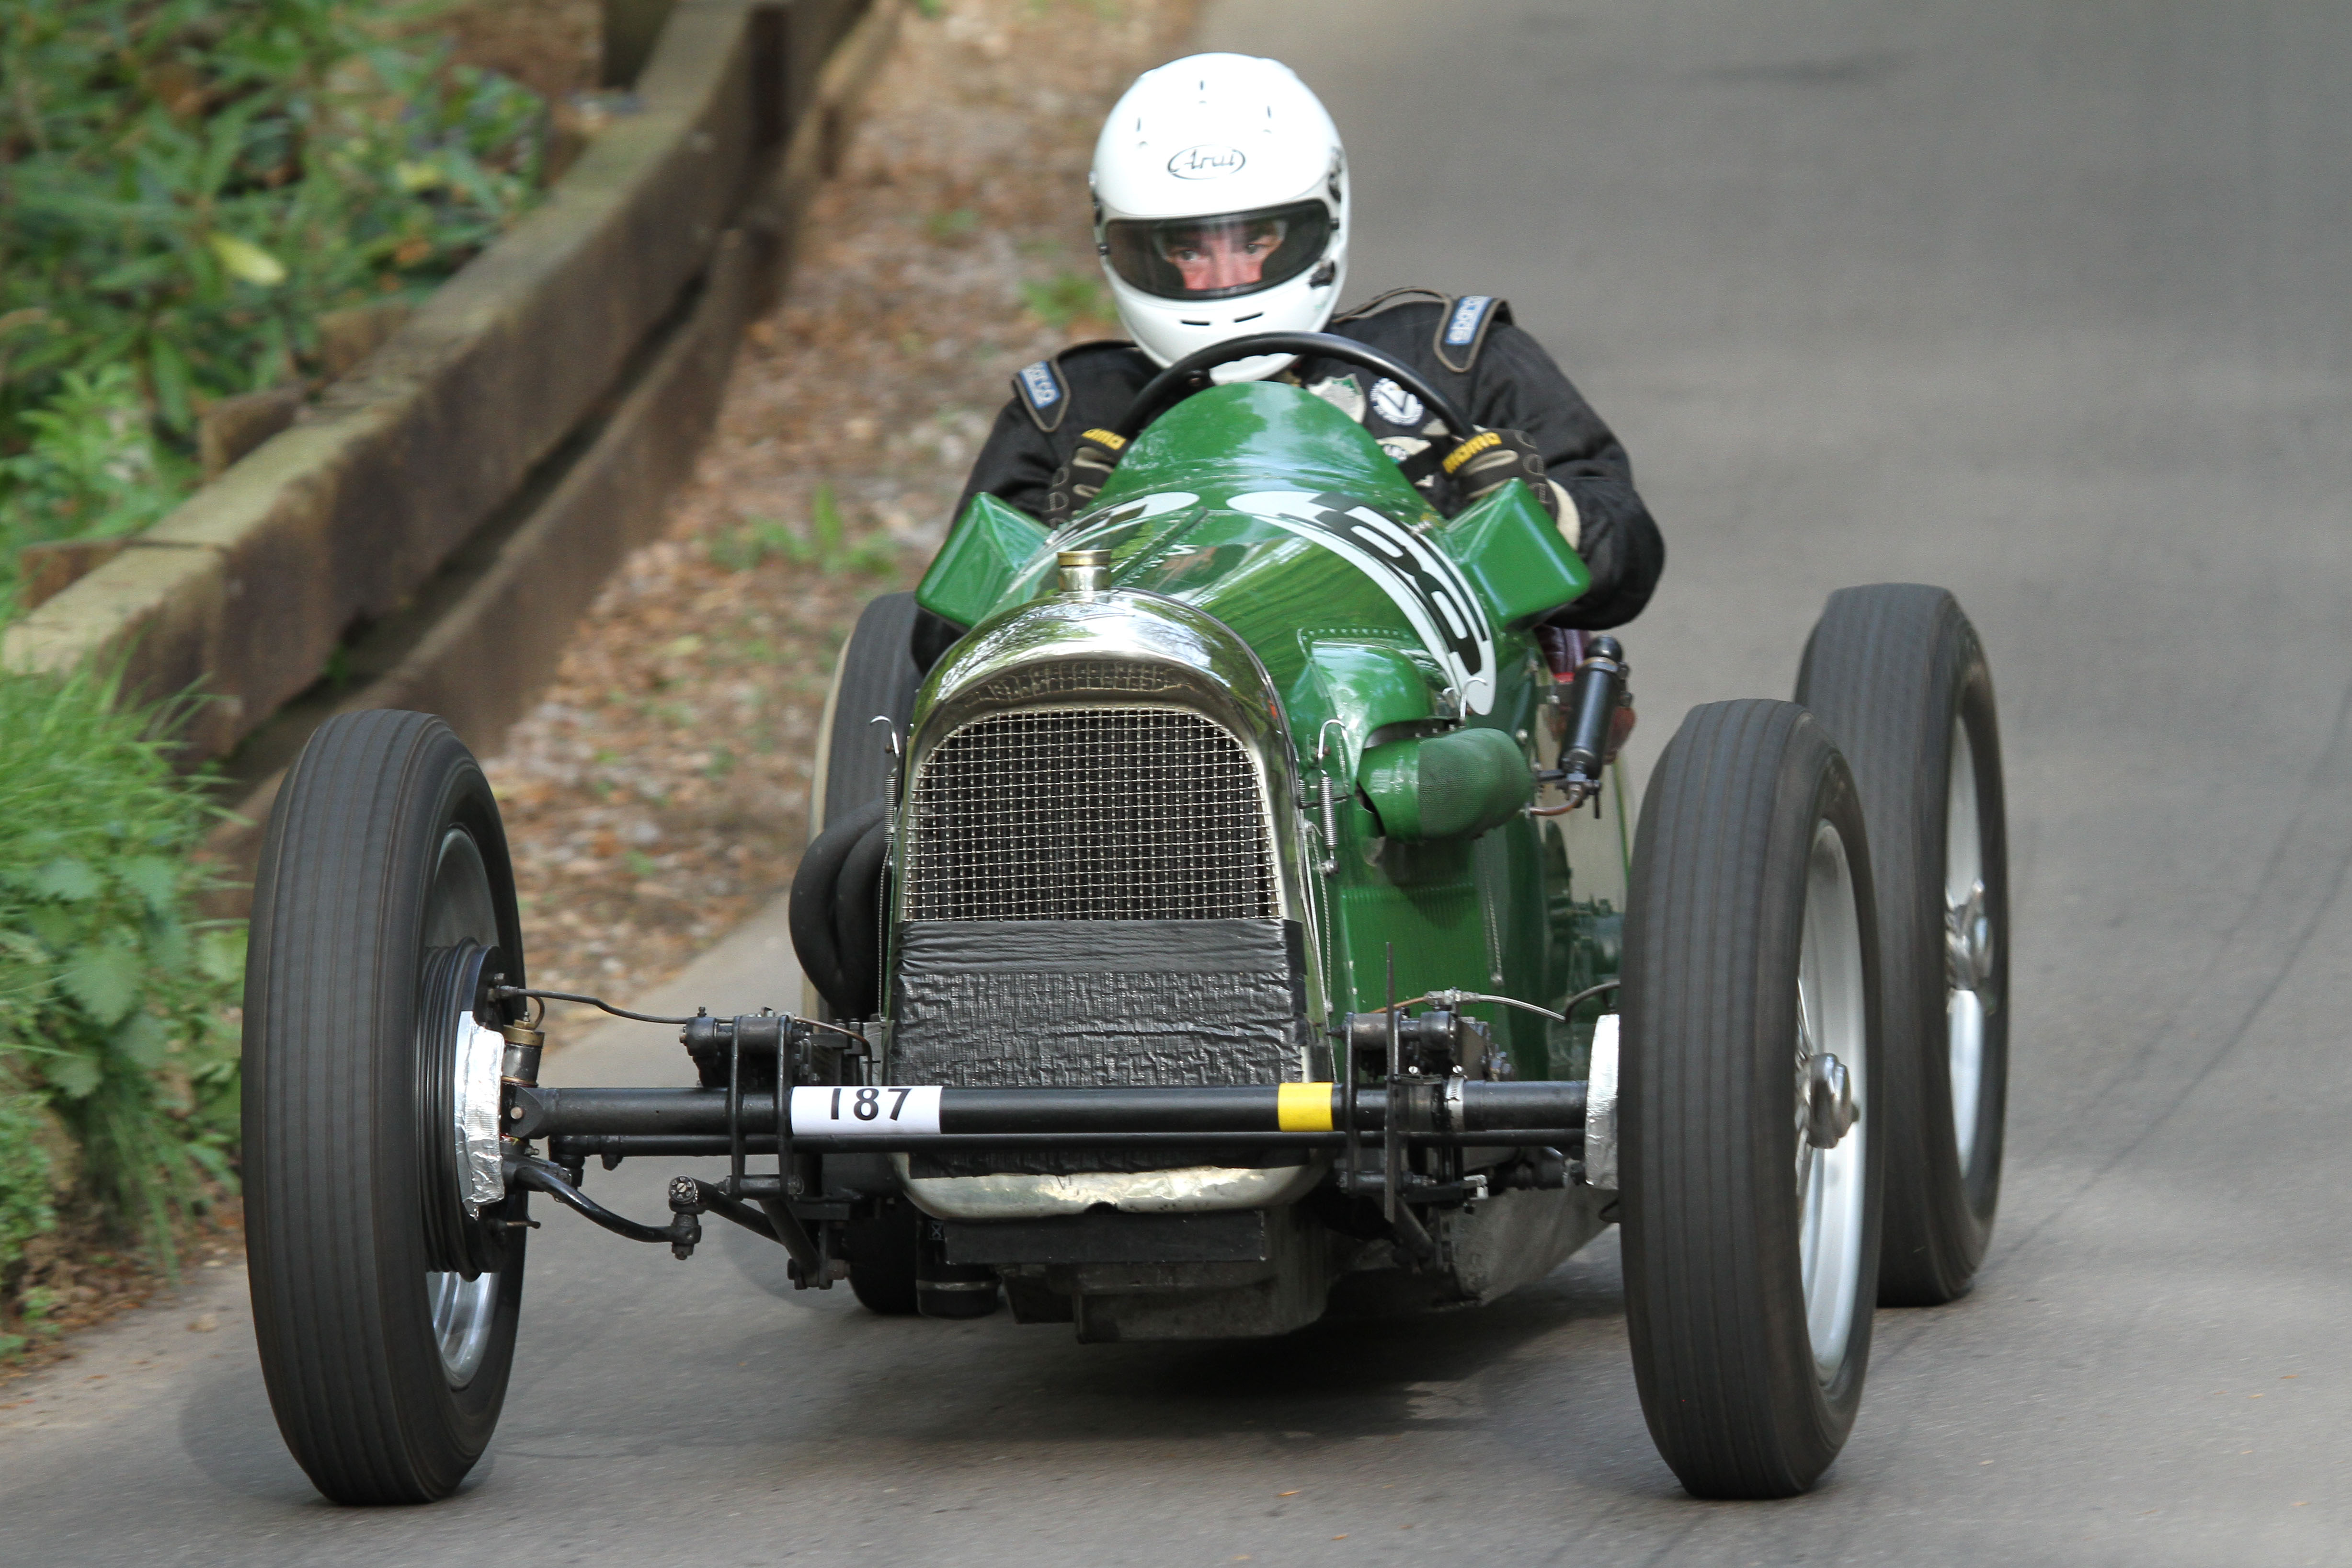 Vintage 'Cognac' Special triumphs in inaugural VSCC Speed Championship cover